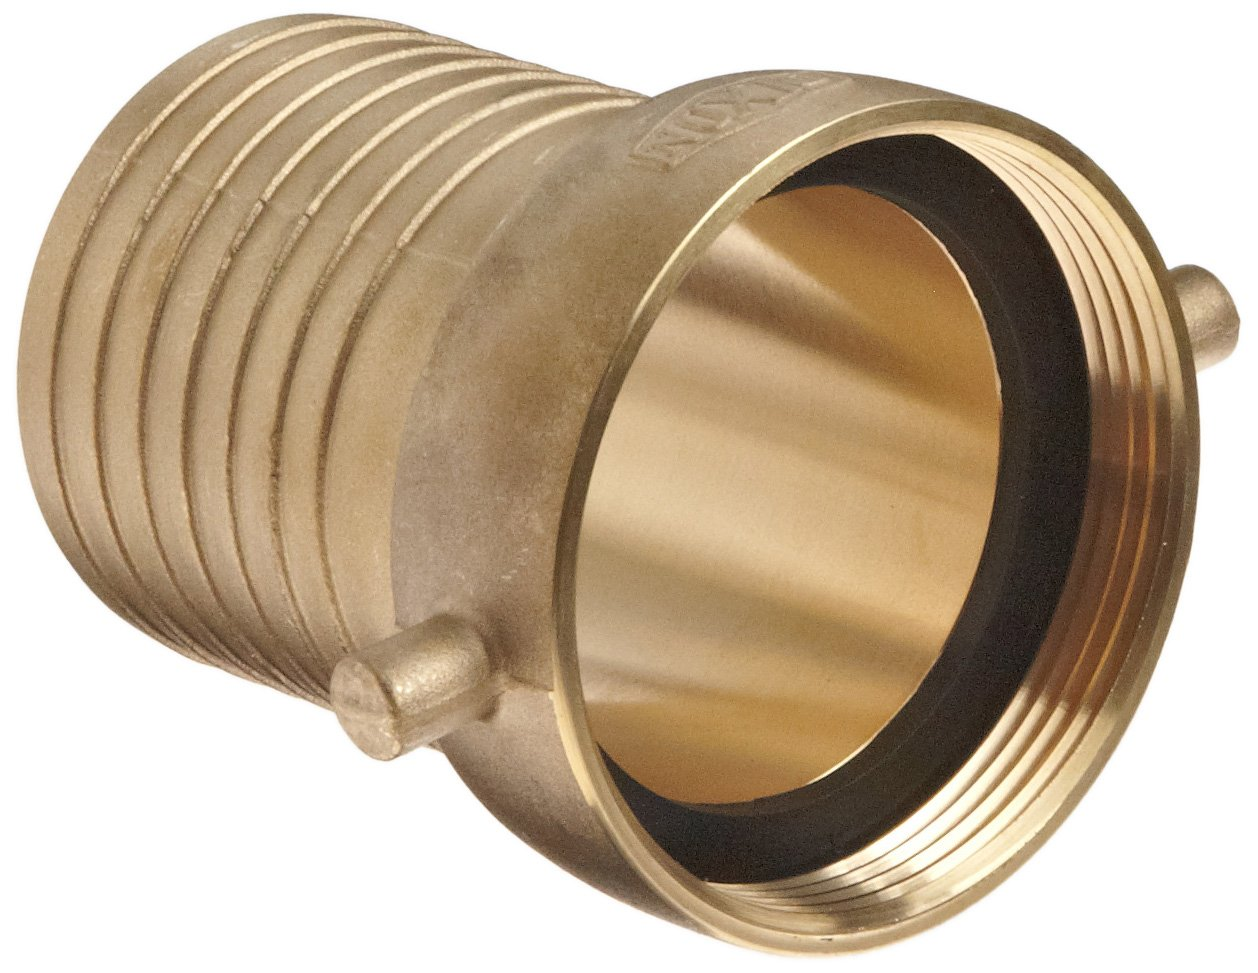 Dixon FBB300 Brass Hose Fitting 3 NPSM Female x 3 Hose ID Barbed King Short Shank Suction Coupling with Brass Nut